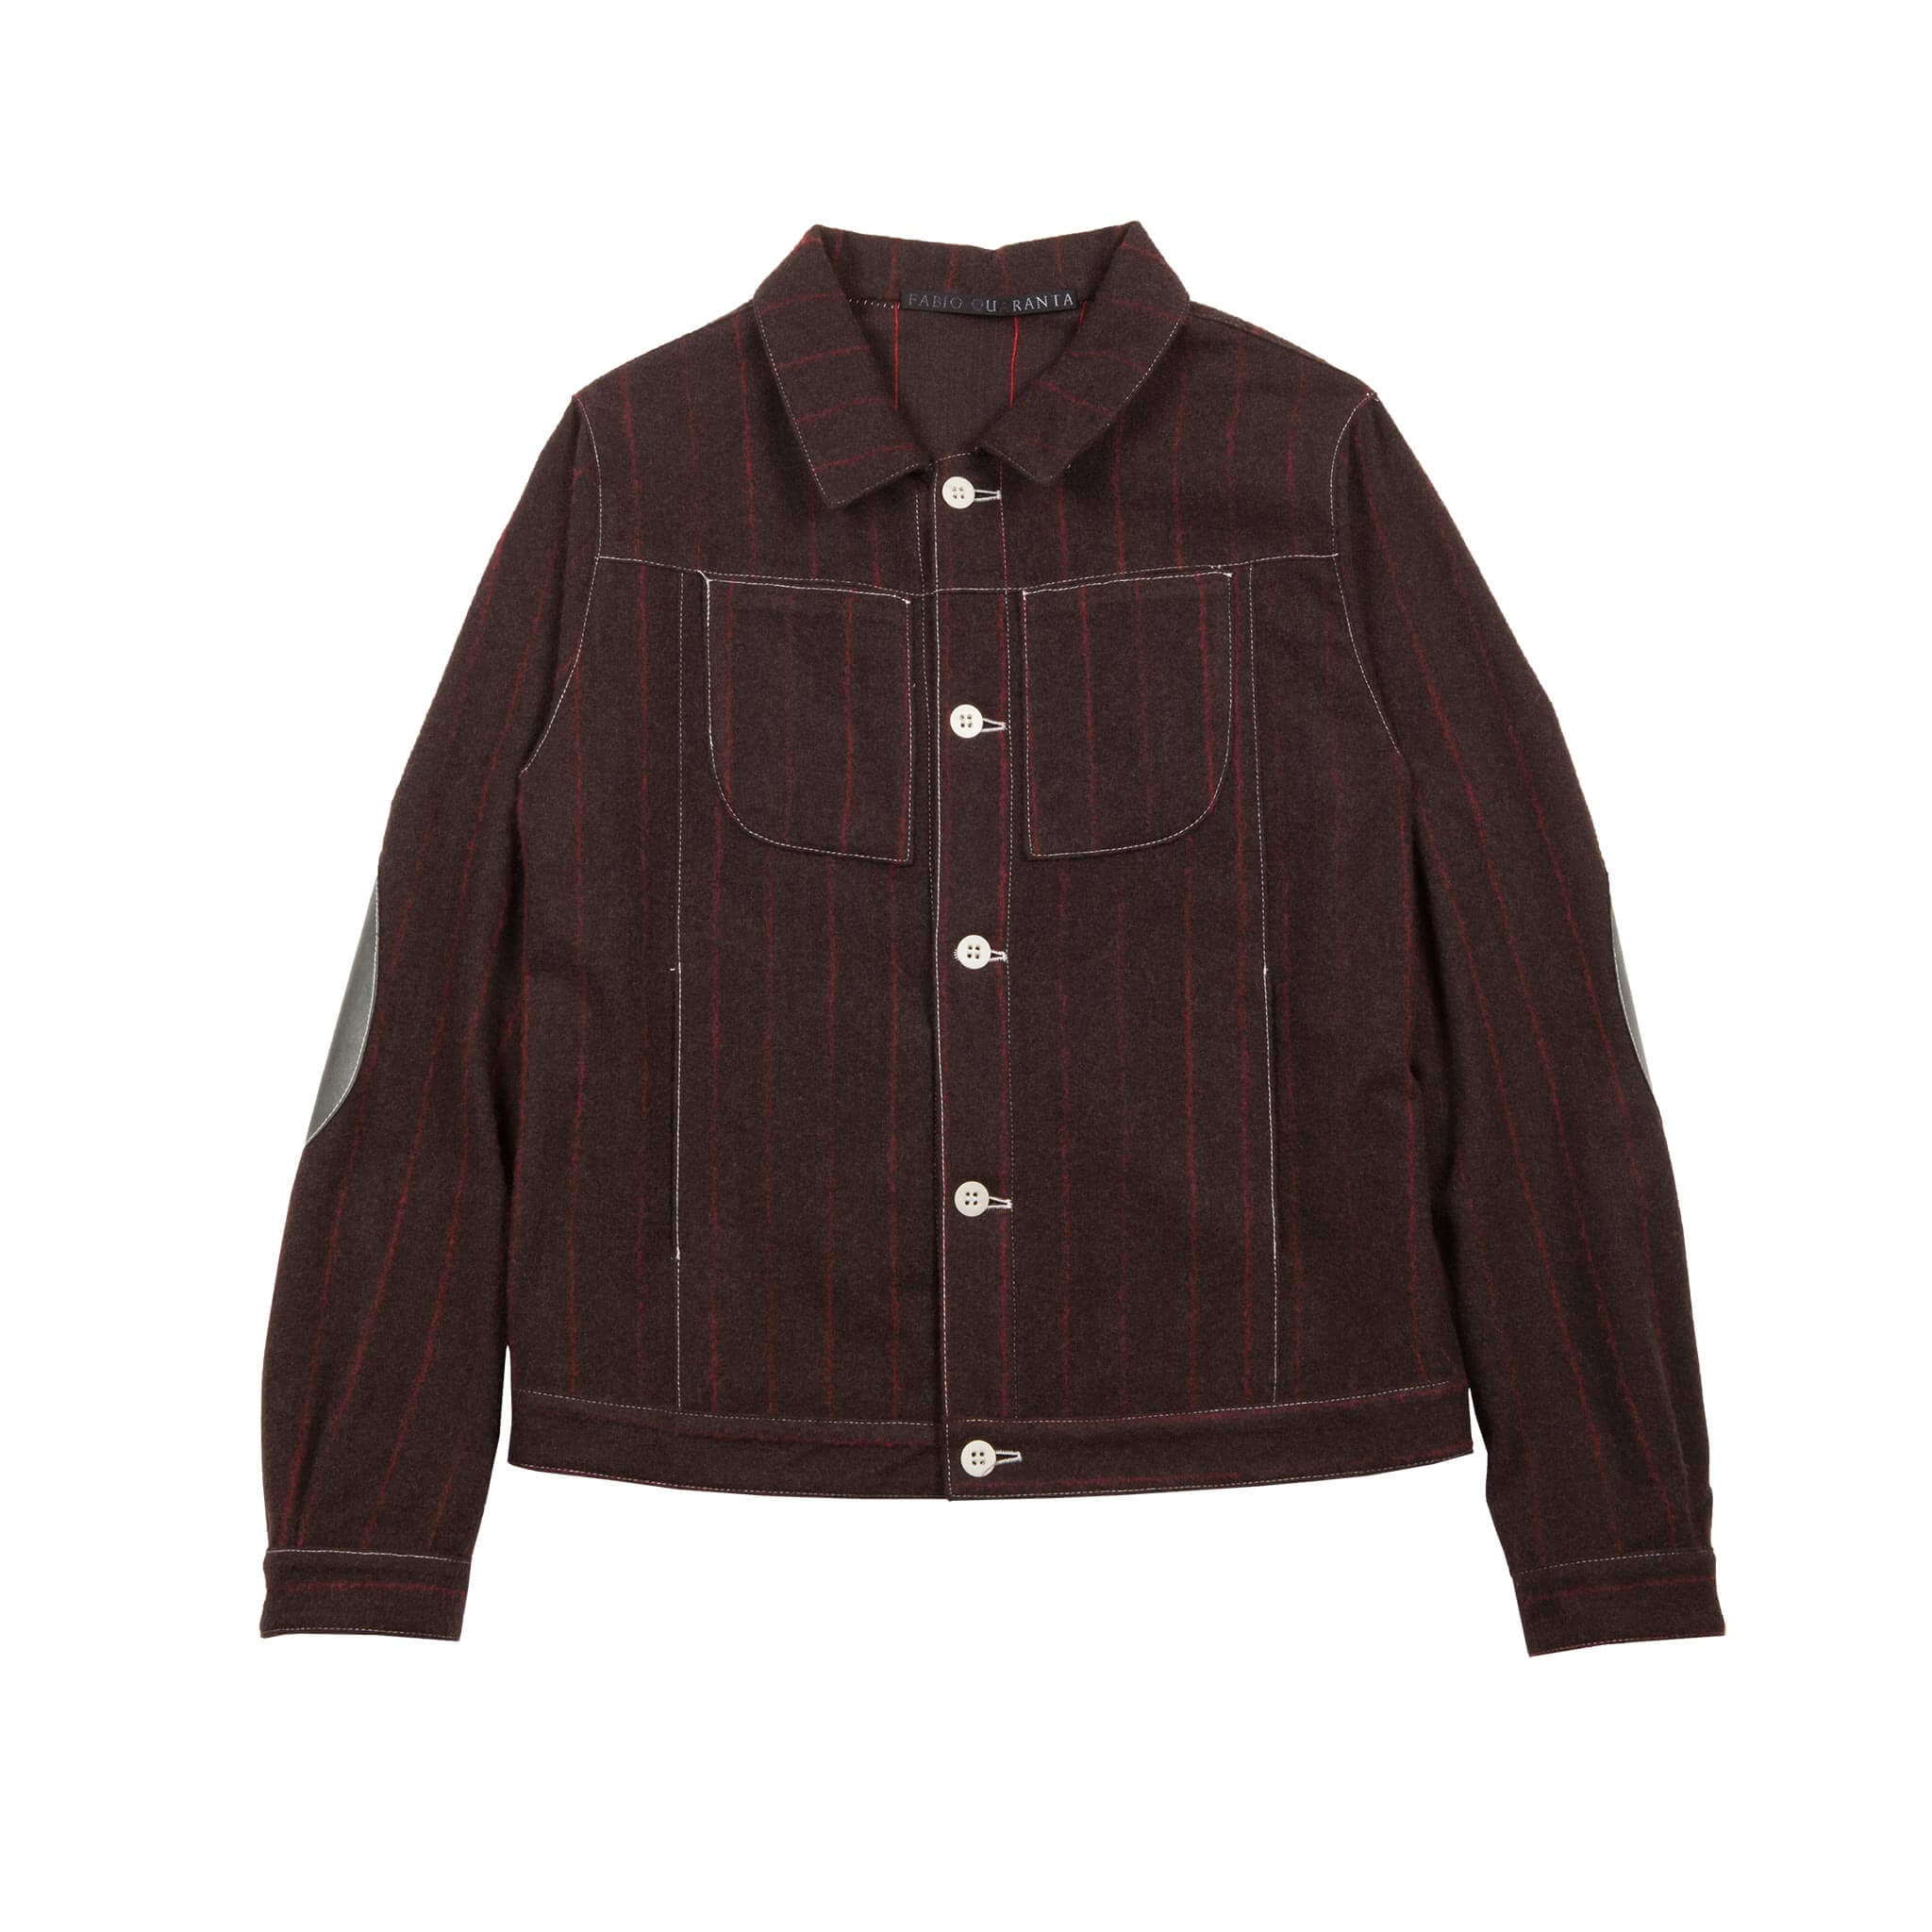 BROWN WOOL AND CASHMERE PINSTRIPE TRUCKER JACKET 1 of 1